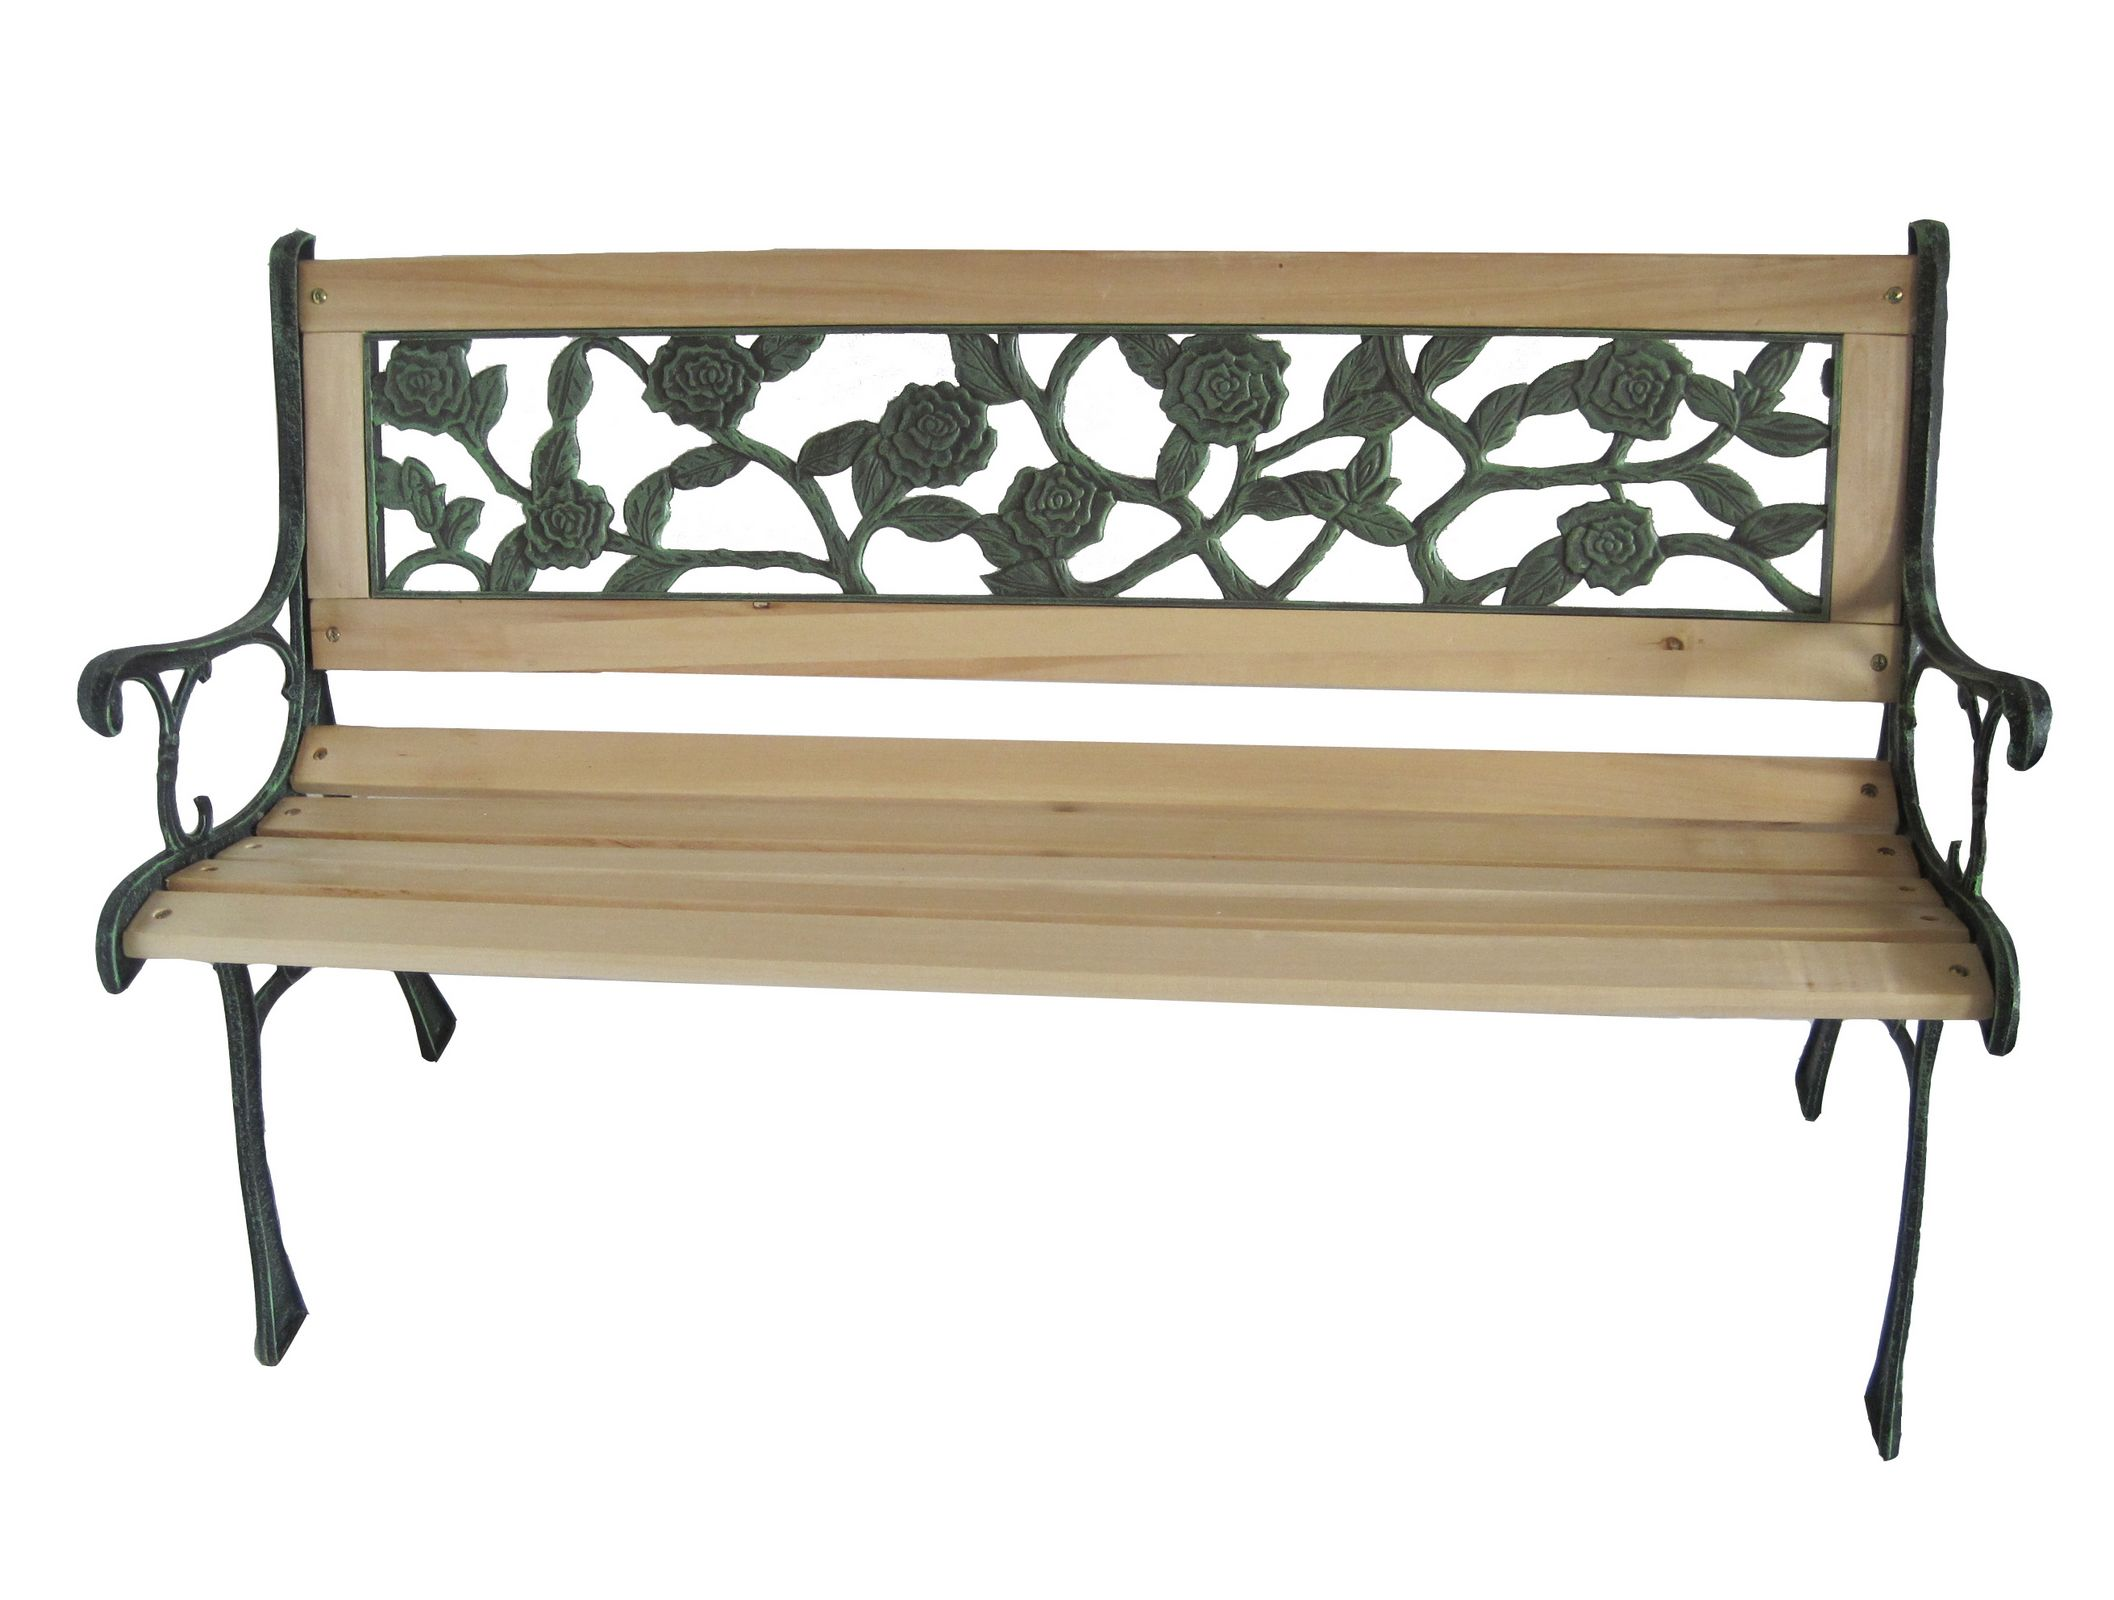 Wooden slat garden bench seat cast iron legs rose style ebay Wrought iron outdoor bench